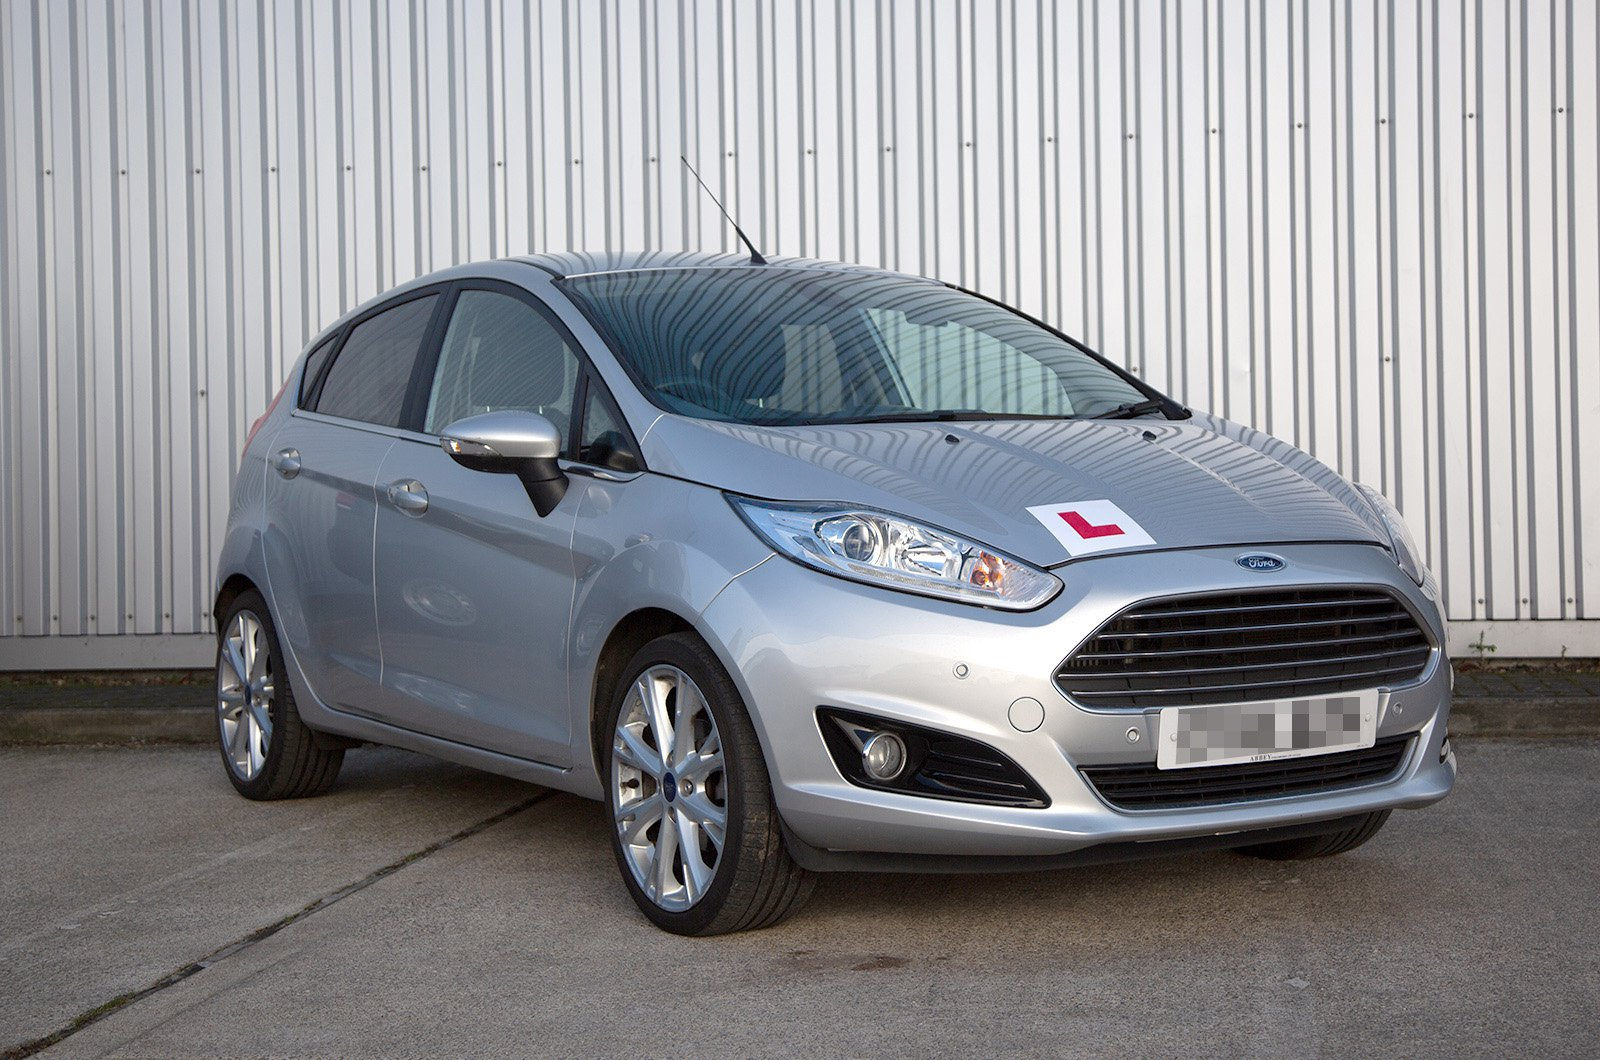 Ford Fiesta with 'L' plates